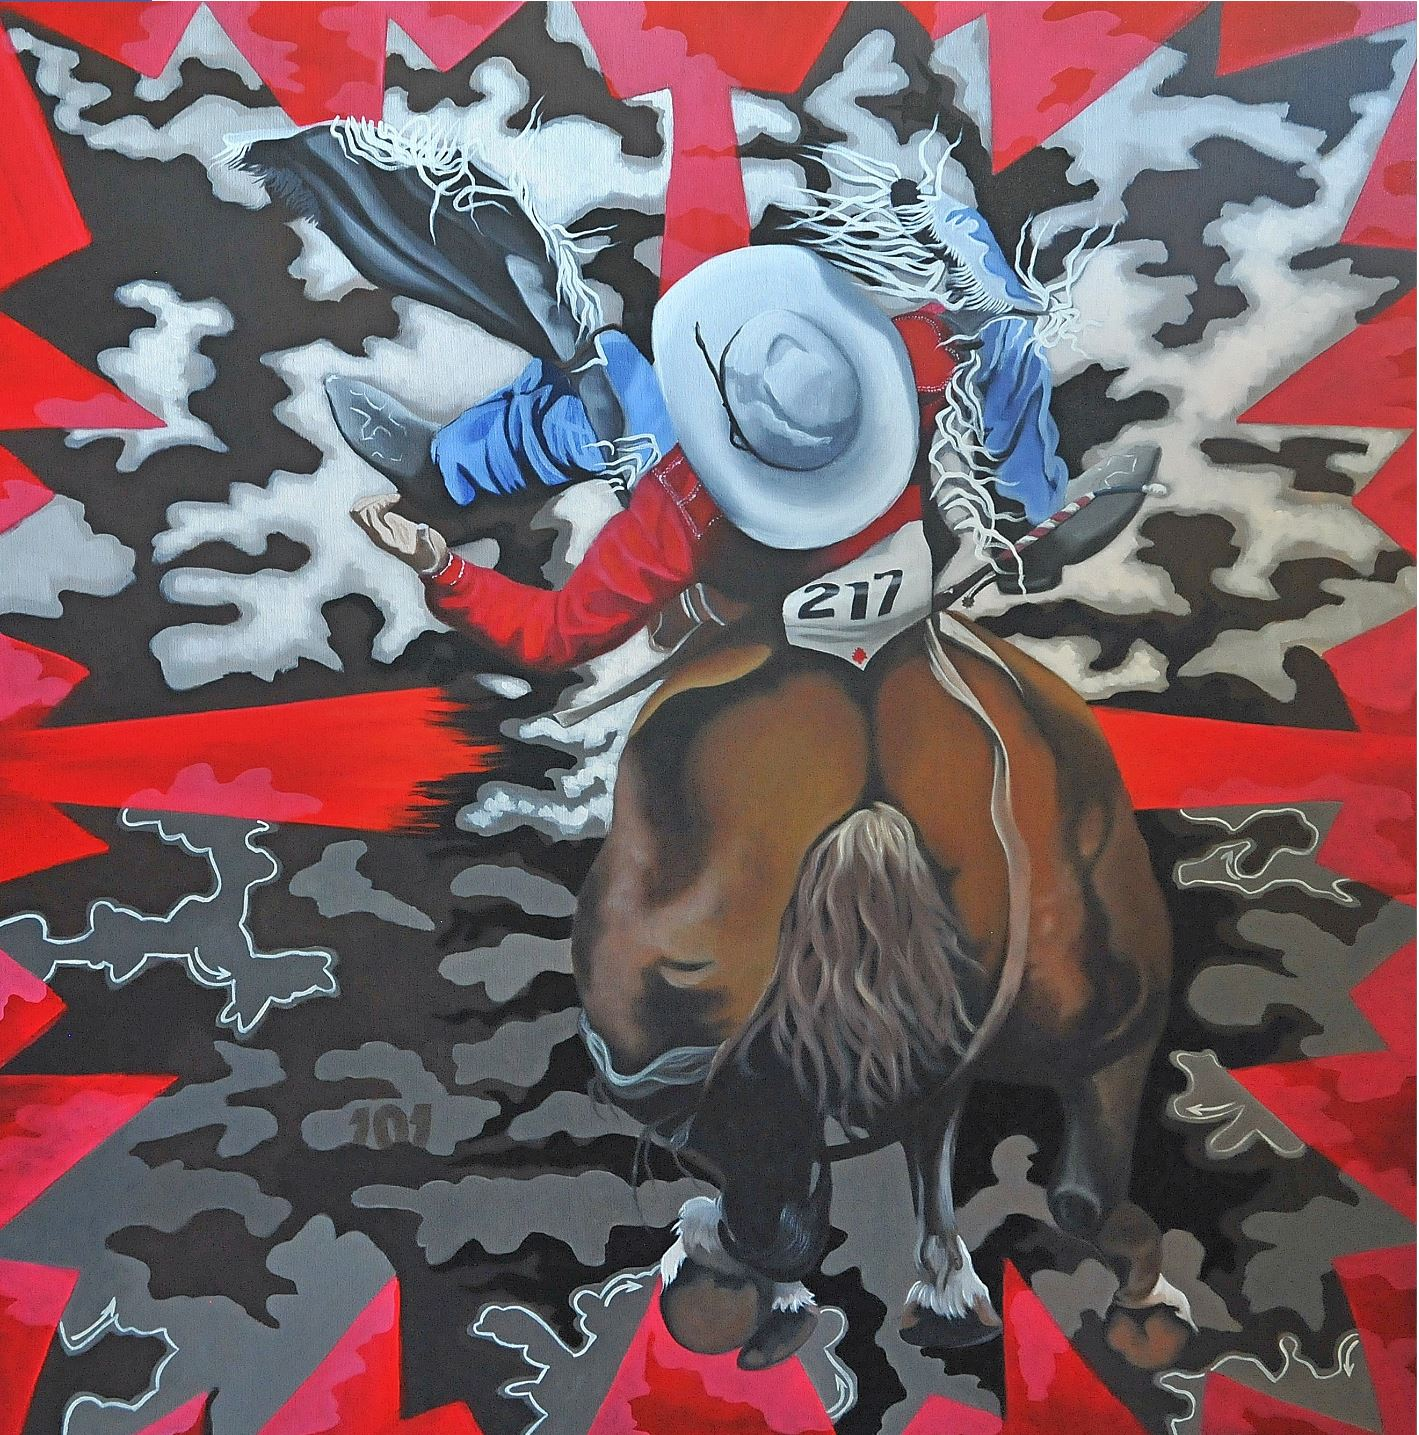 painting of cowboy on horse at calgary stampede